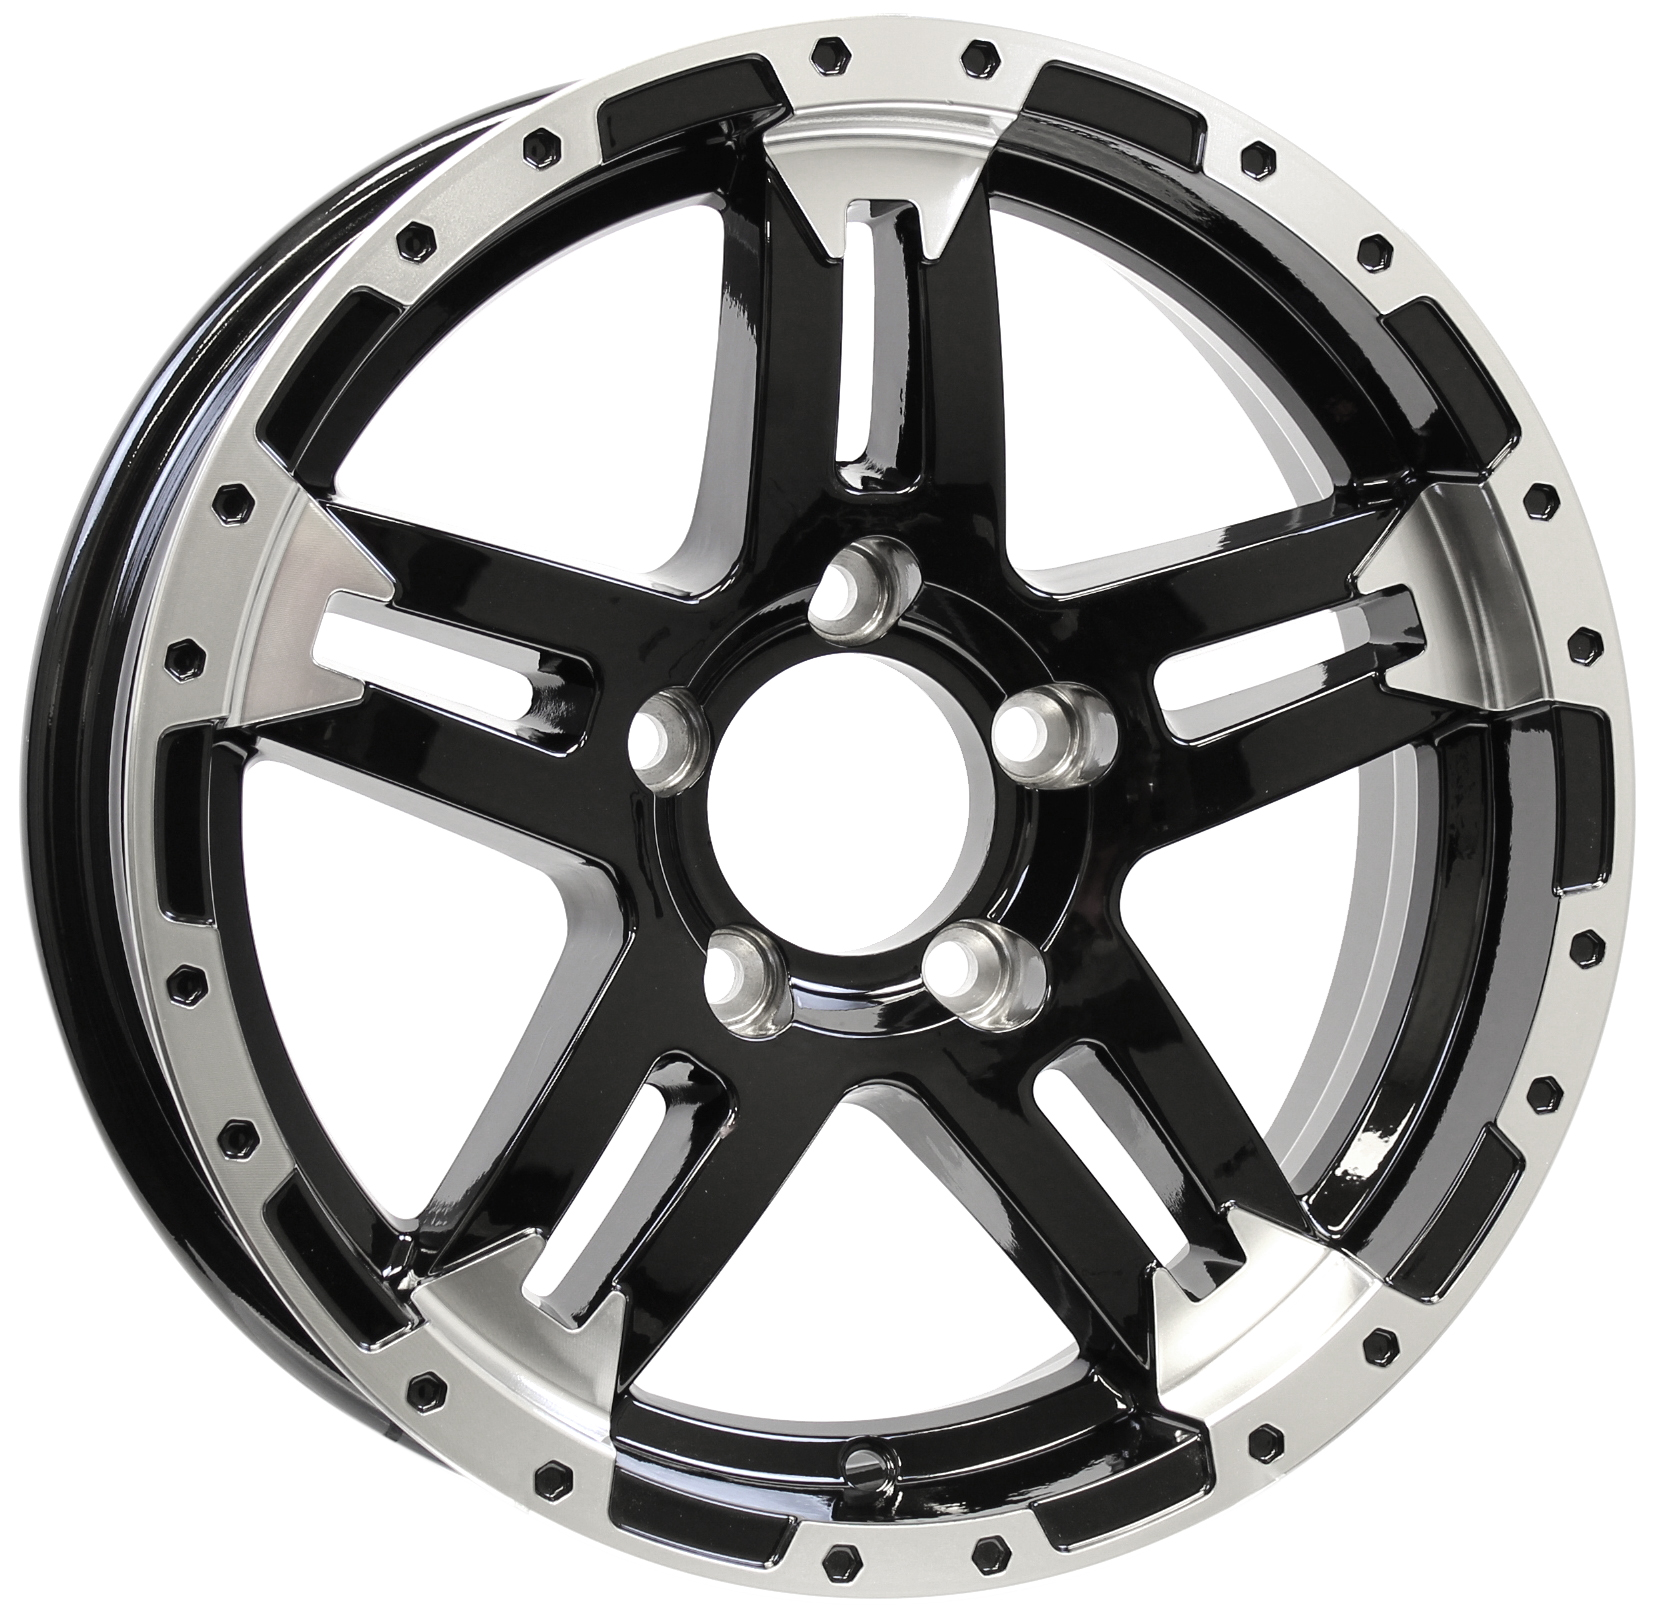 Turismo- 15x5 5-4.5 Black Aluminum Trailer Wheel Image